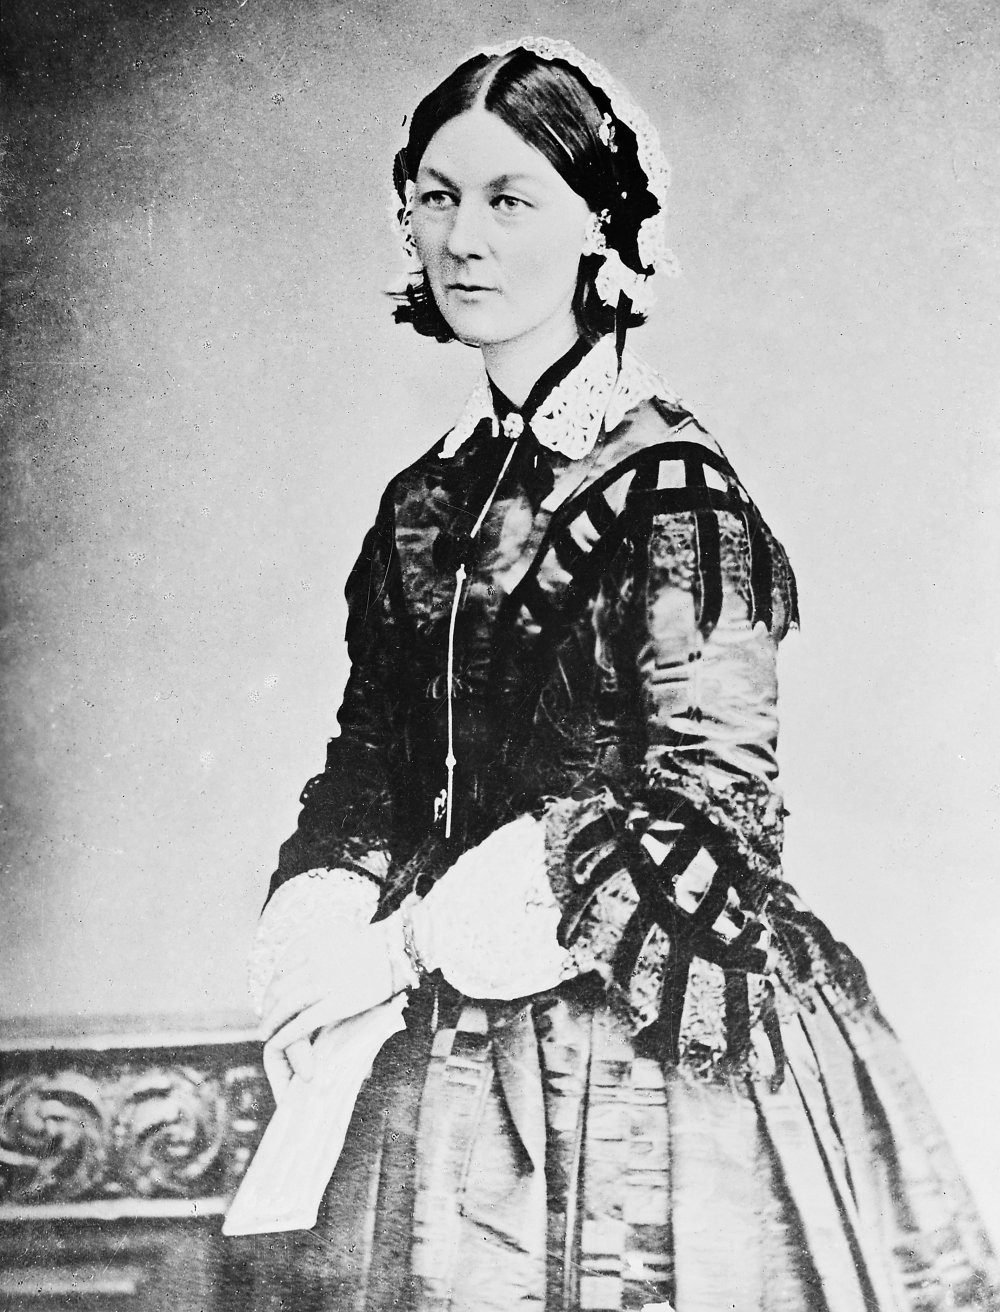 Florence Nightingale. Photograph by the London Stereoscopic & Photographic Company Ltd.